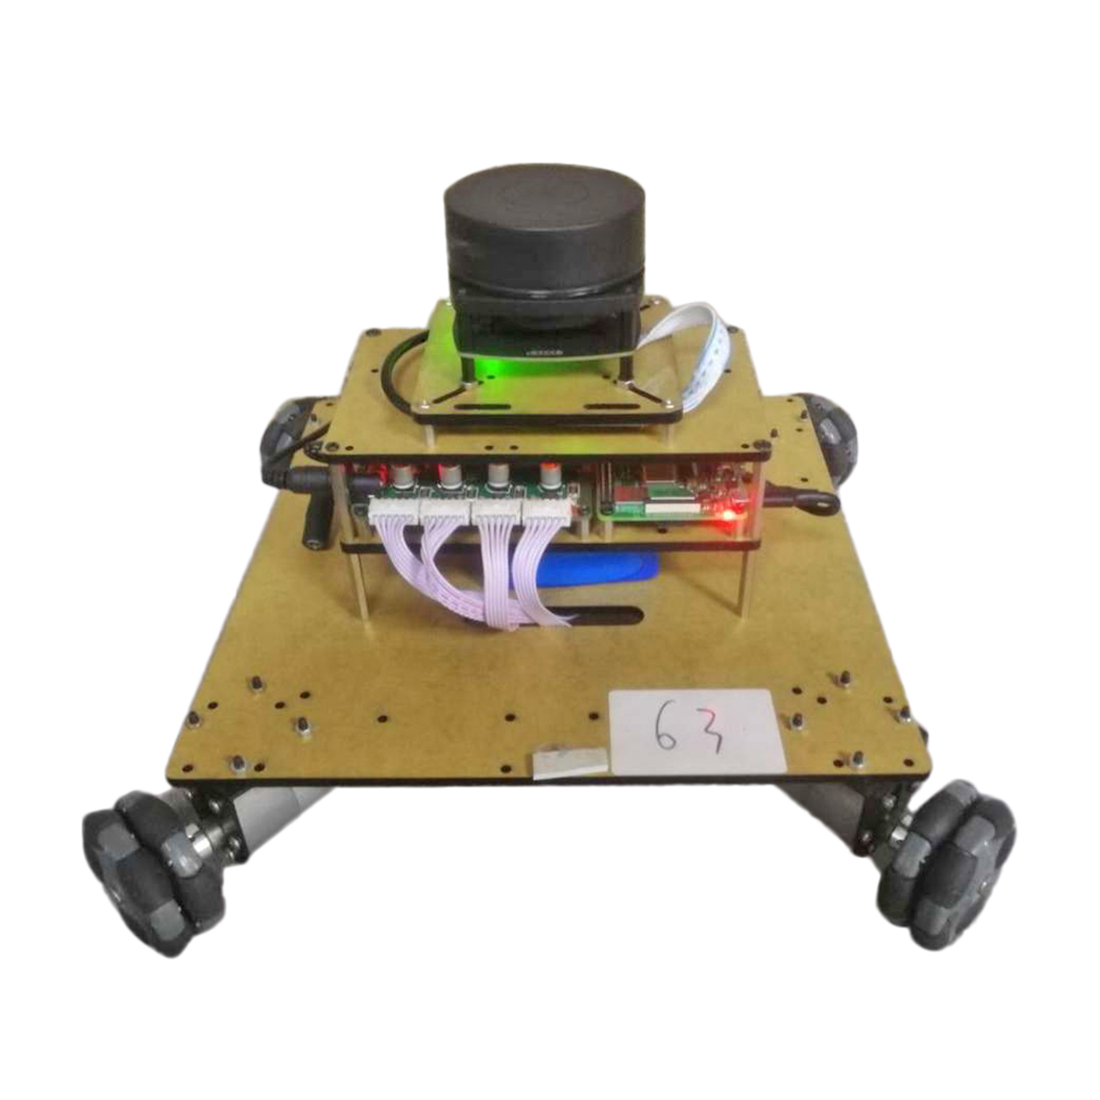 Smart Intelligent Programmable Robot Operating System Ailibot Omnidirectional Robot Car Kit For Teaching Science - 03/04 Version